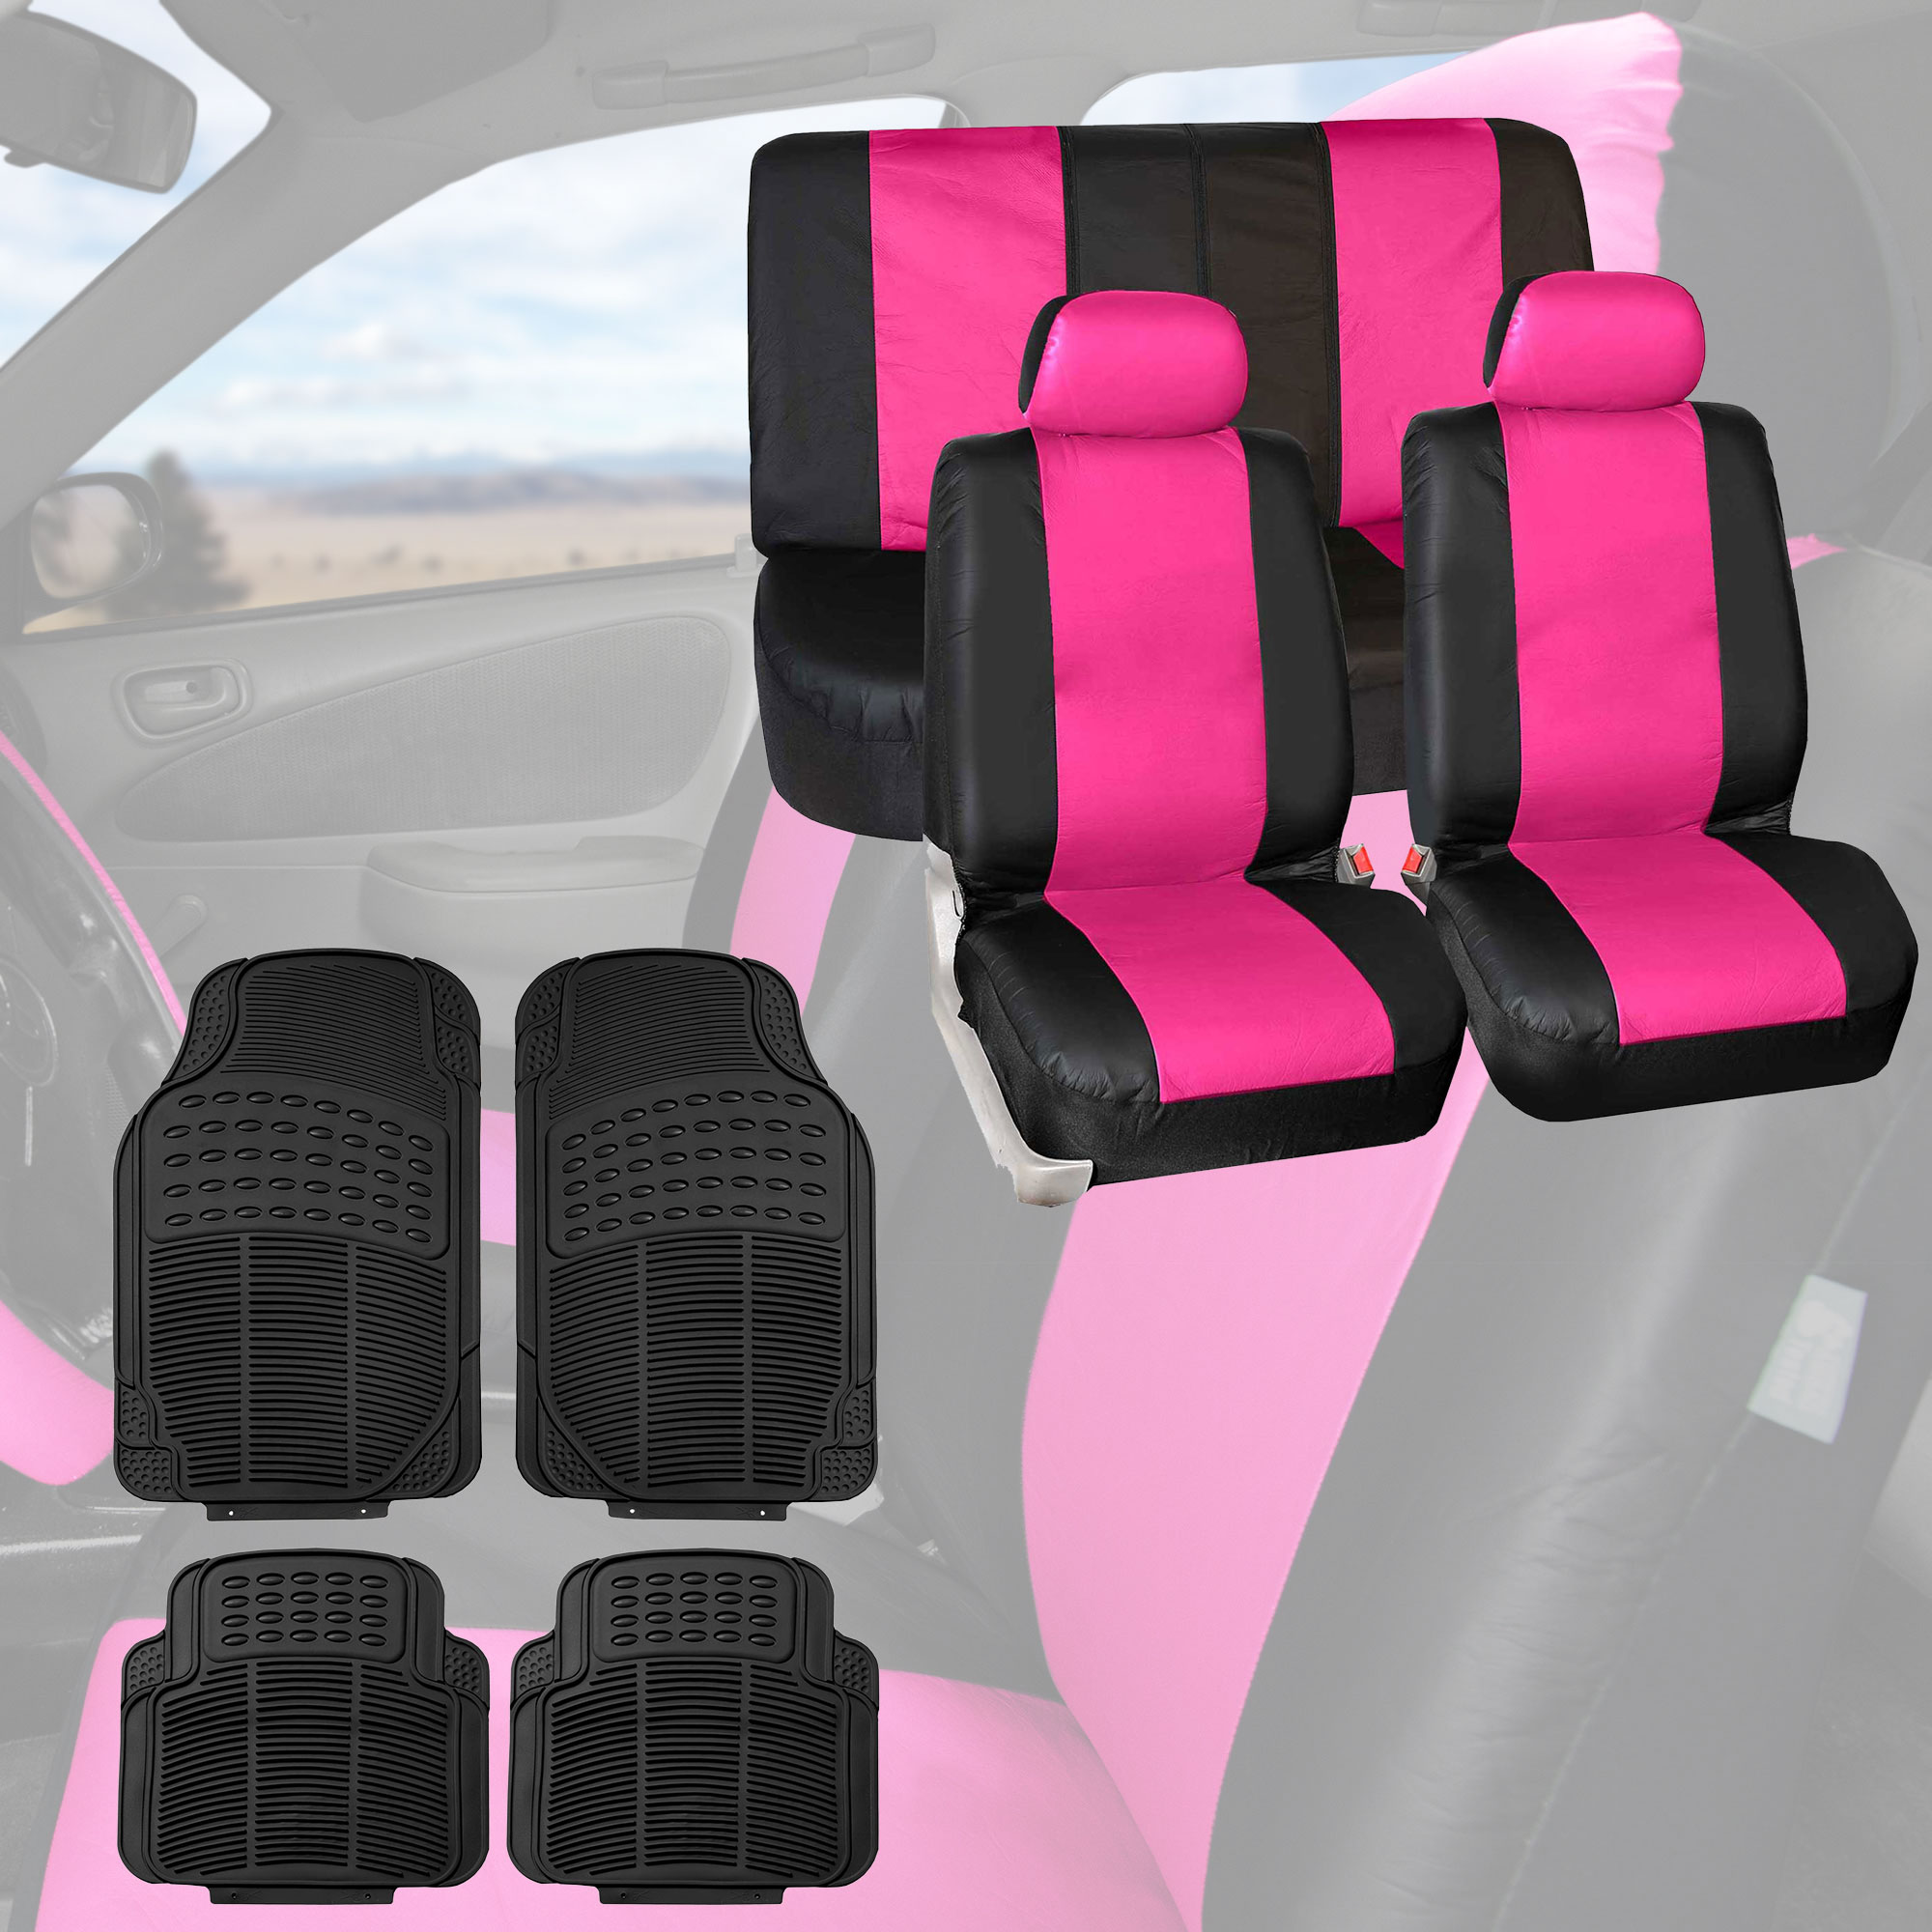 FH Group, Leather Auto Seat Covers Pink Combo With Black